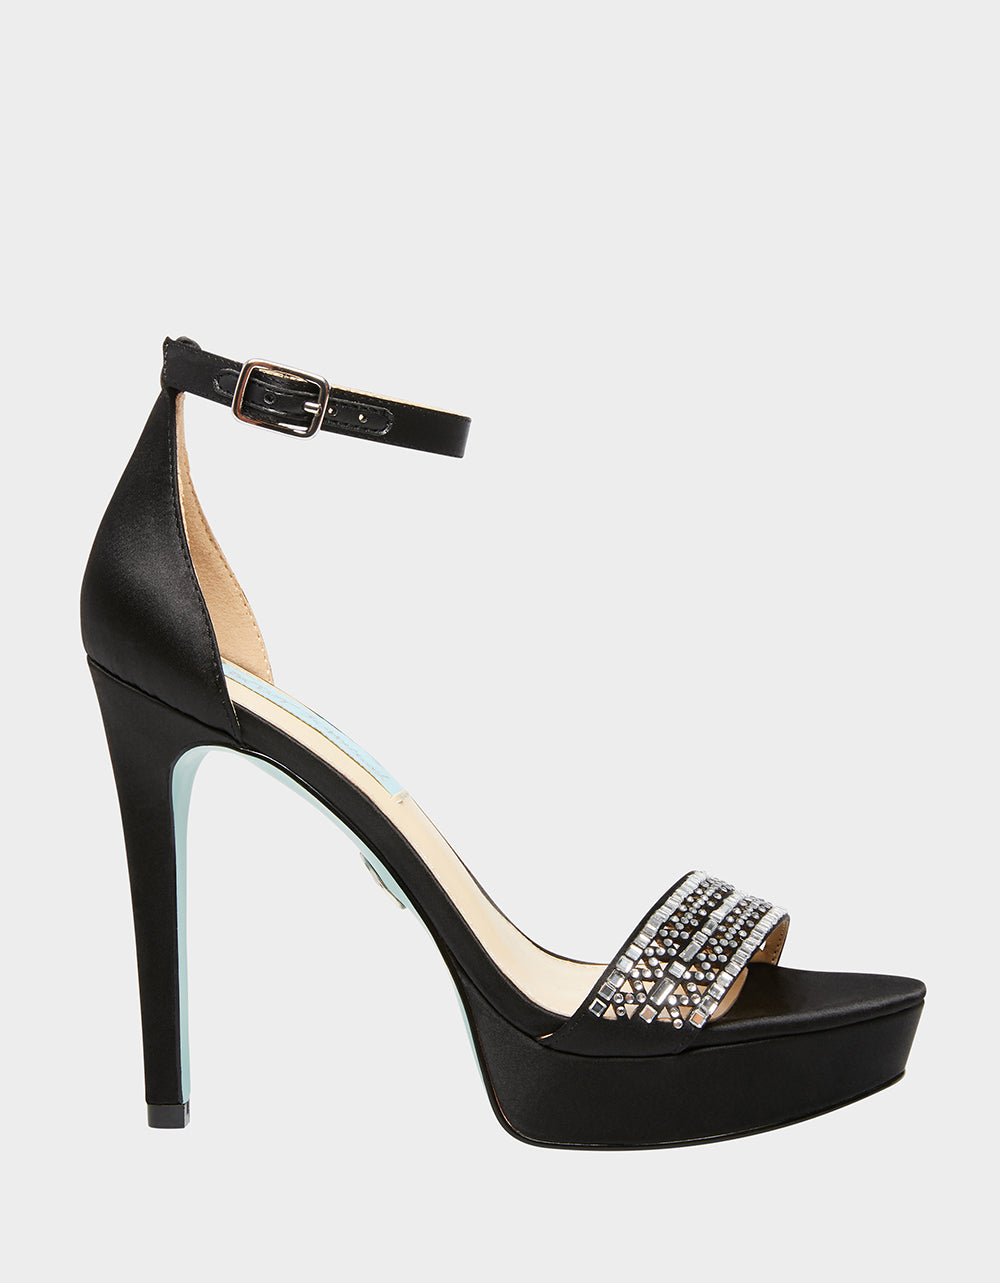 SB-ALMA BLACK - SHOES - Betsey Johnson